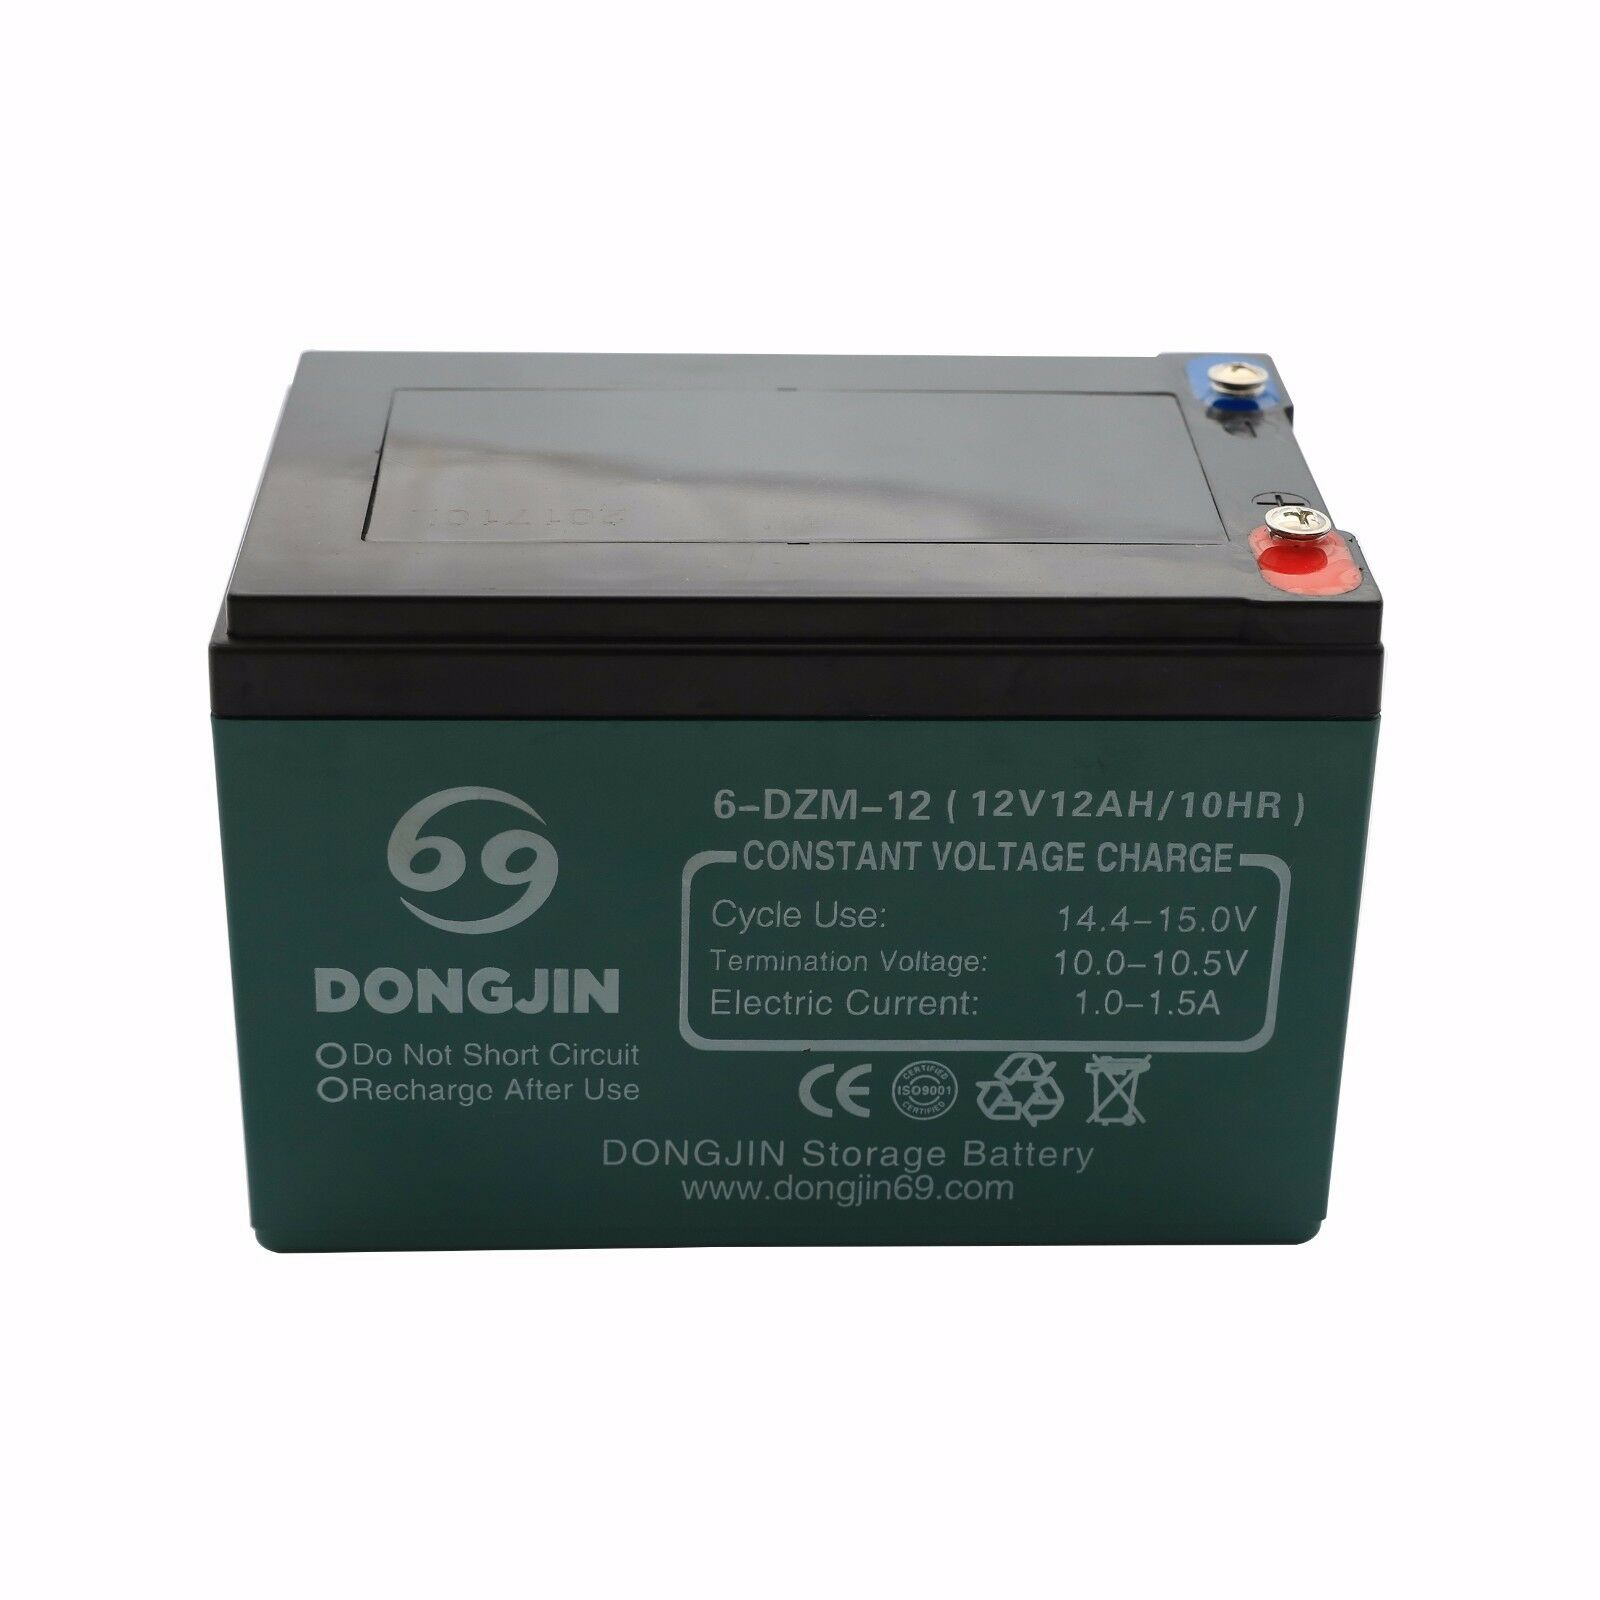 12V 12AH 6-DZM-12 Rechargeable Battery for Electric Scooter ATV Quad Mobility